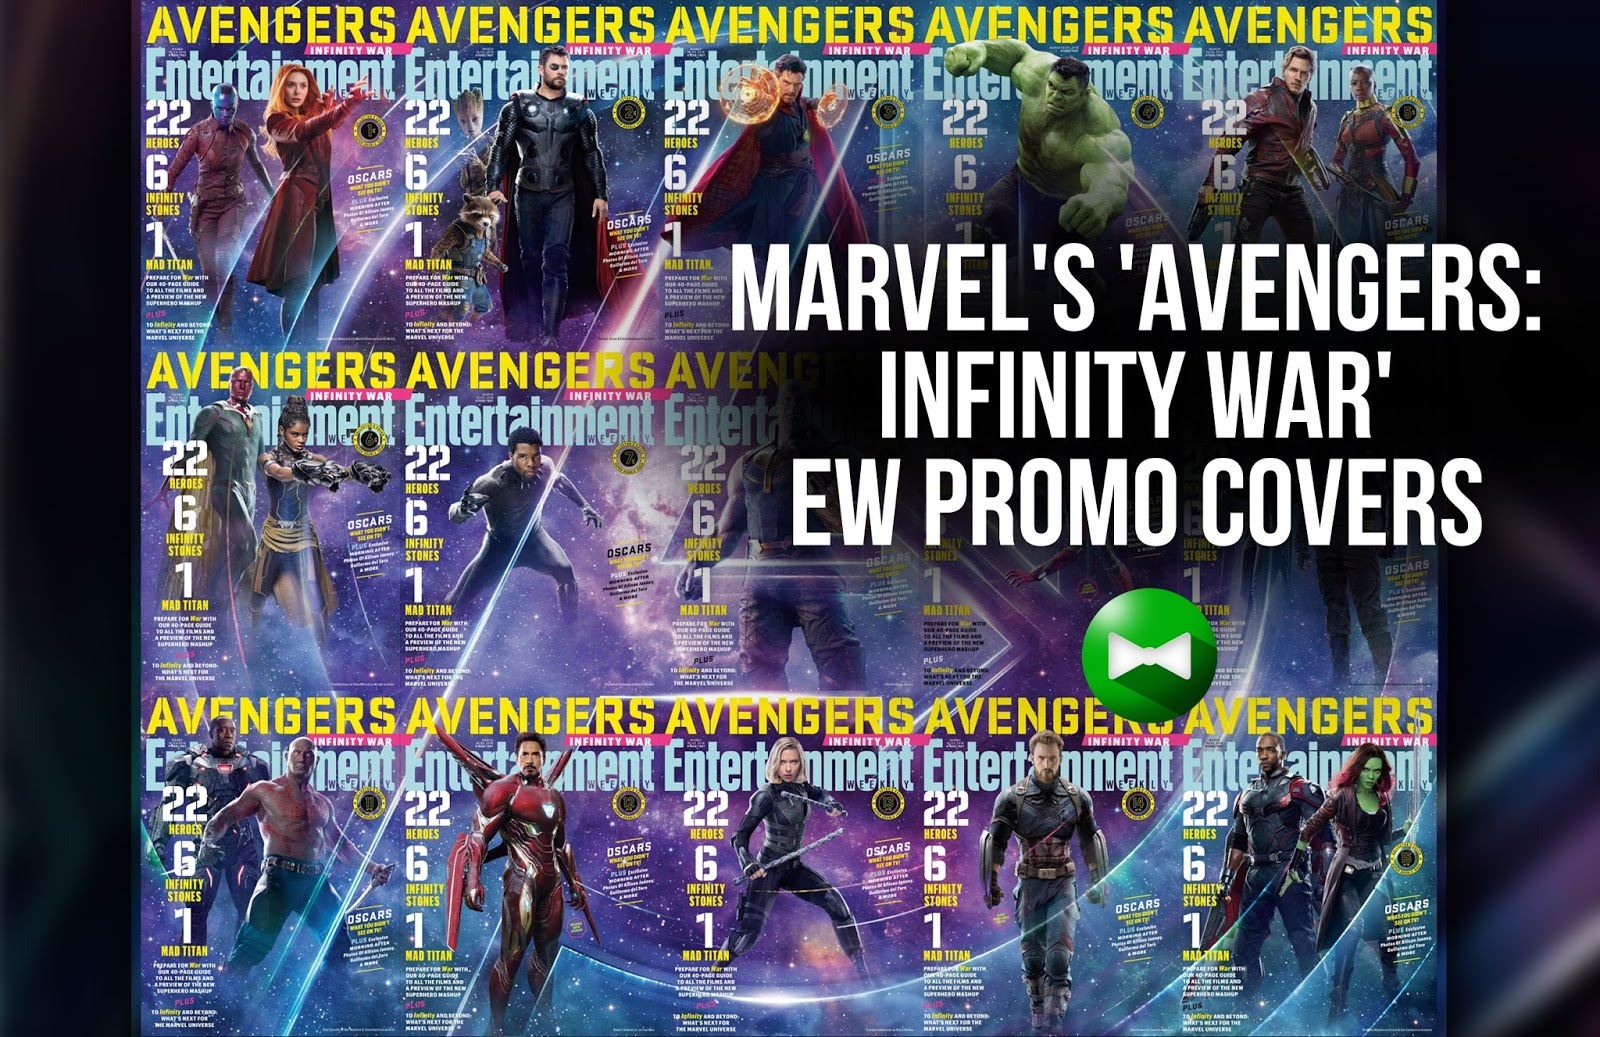 Entertainment Weekly features cover variations for Avengers